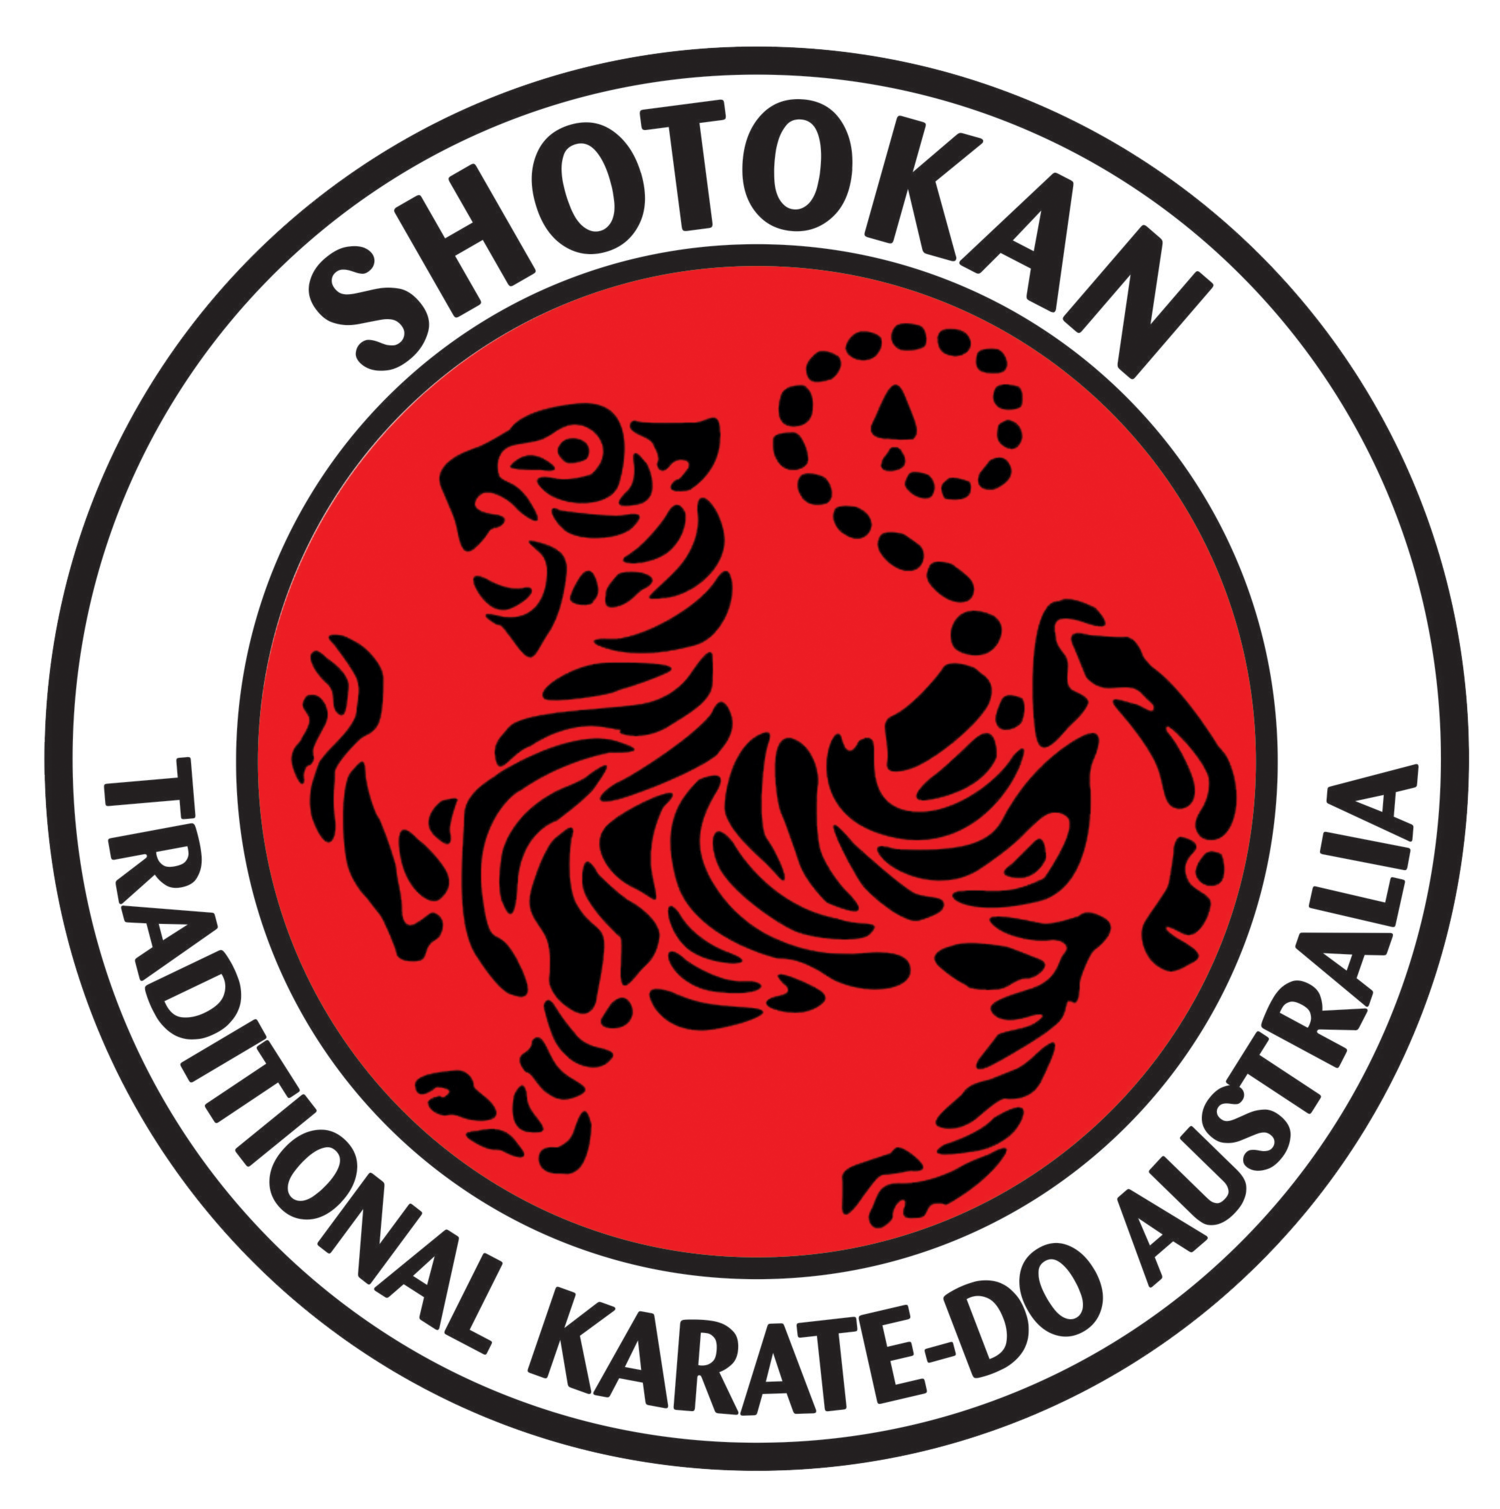 Shotokan Traditional Karate-do Australia